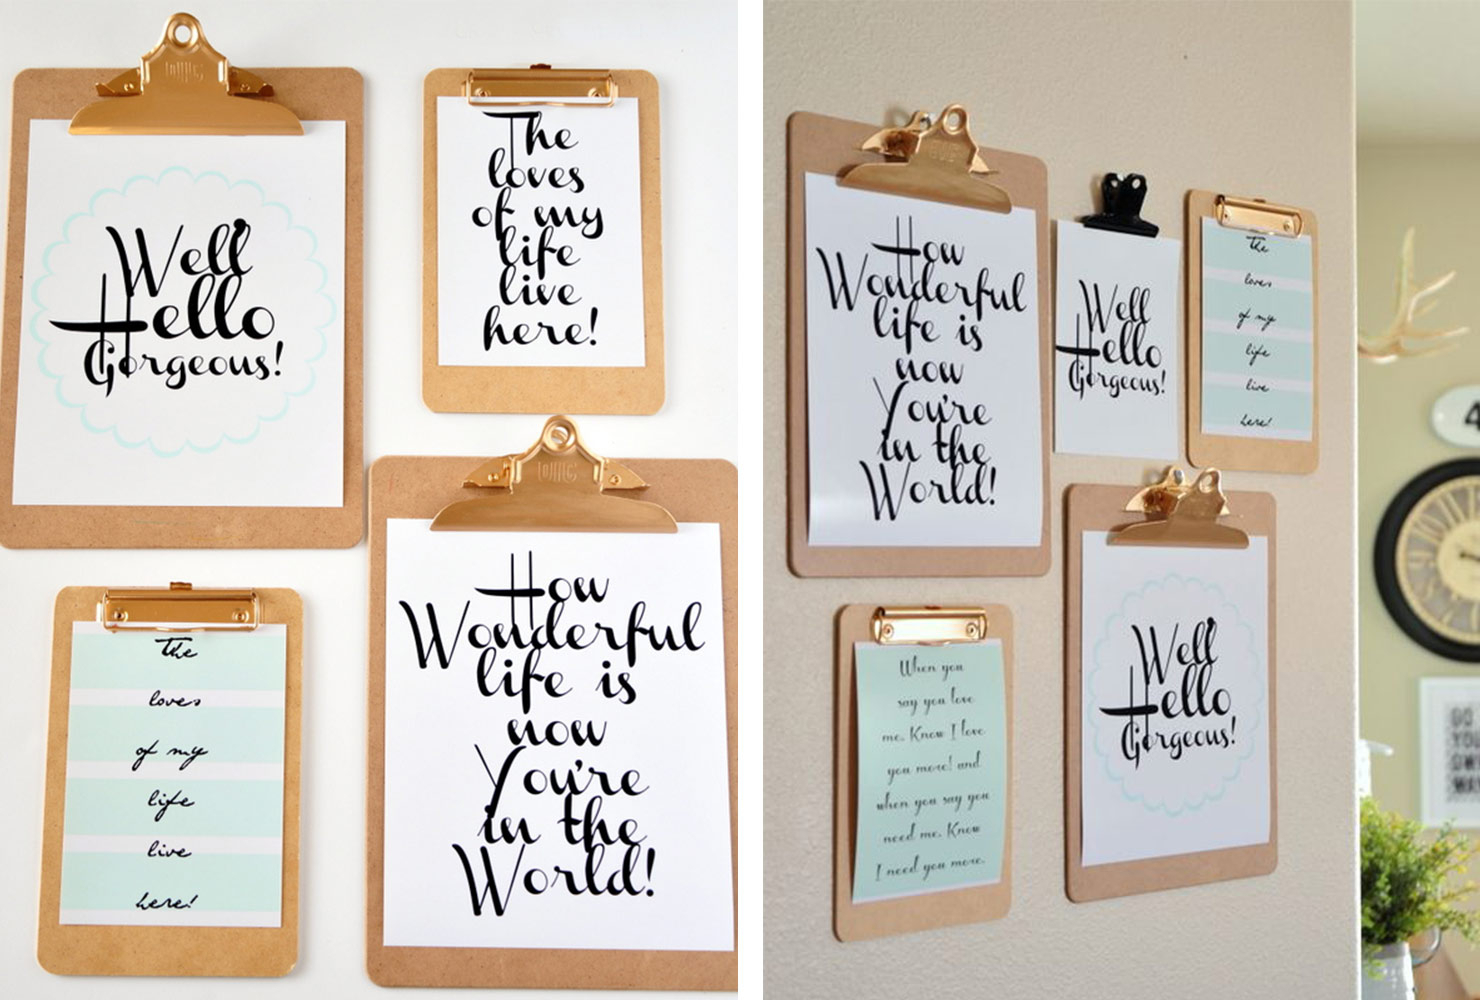 """In A Word """"welcome"""" Wall Decor Within Fashionable 25 Unique Diy Wall Art Ideas (With Printables) (Gallery 13 of 20)"""